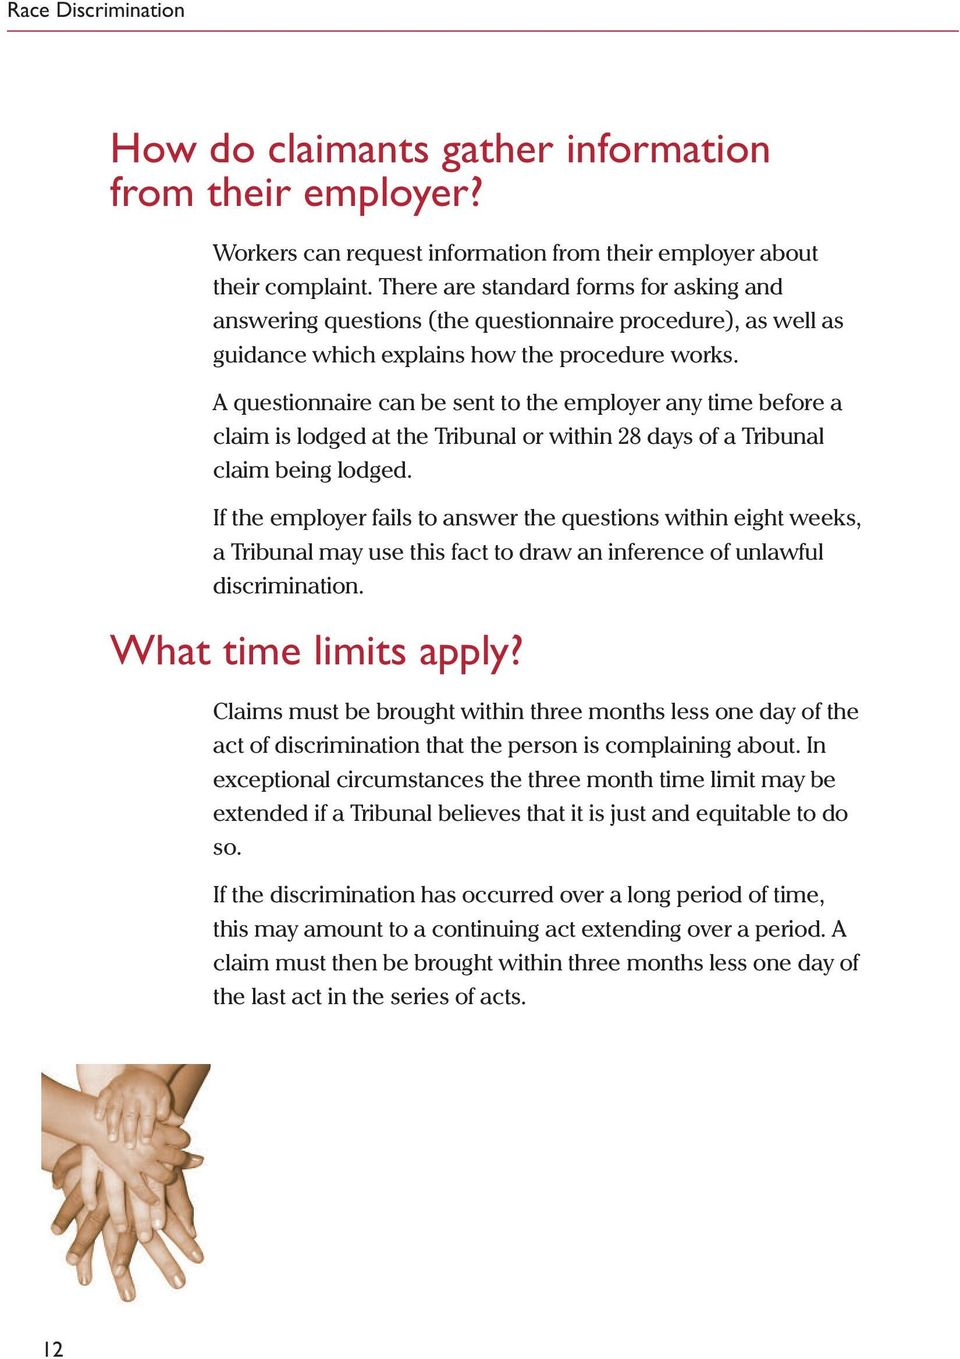 A questionnaire can be sent to the employer any time before a claim is lodged at the Tribunal or within 28 days of a Tribunal claim being lodged.